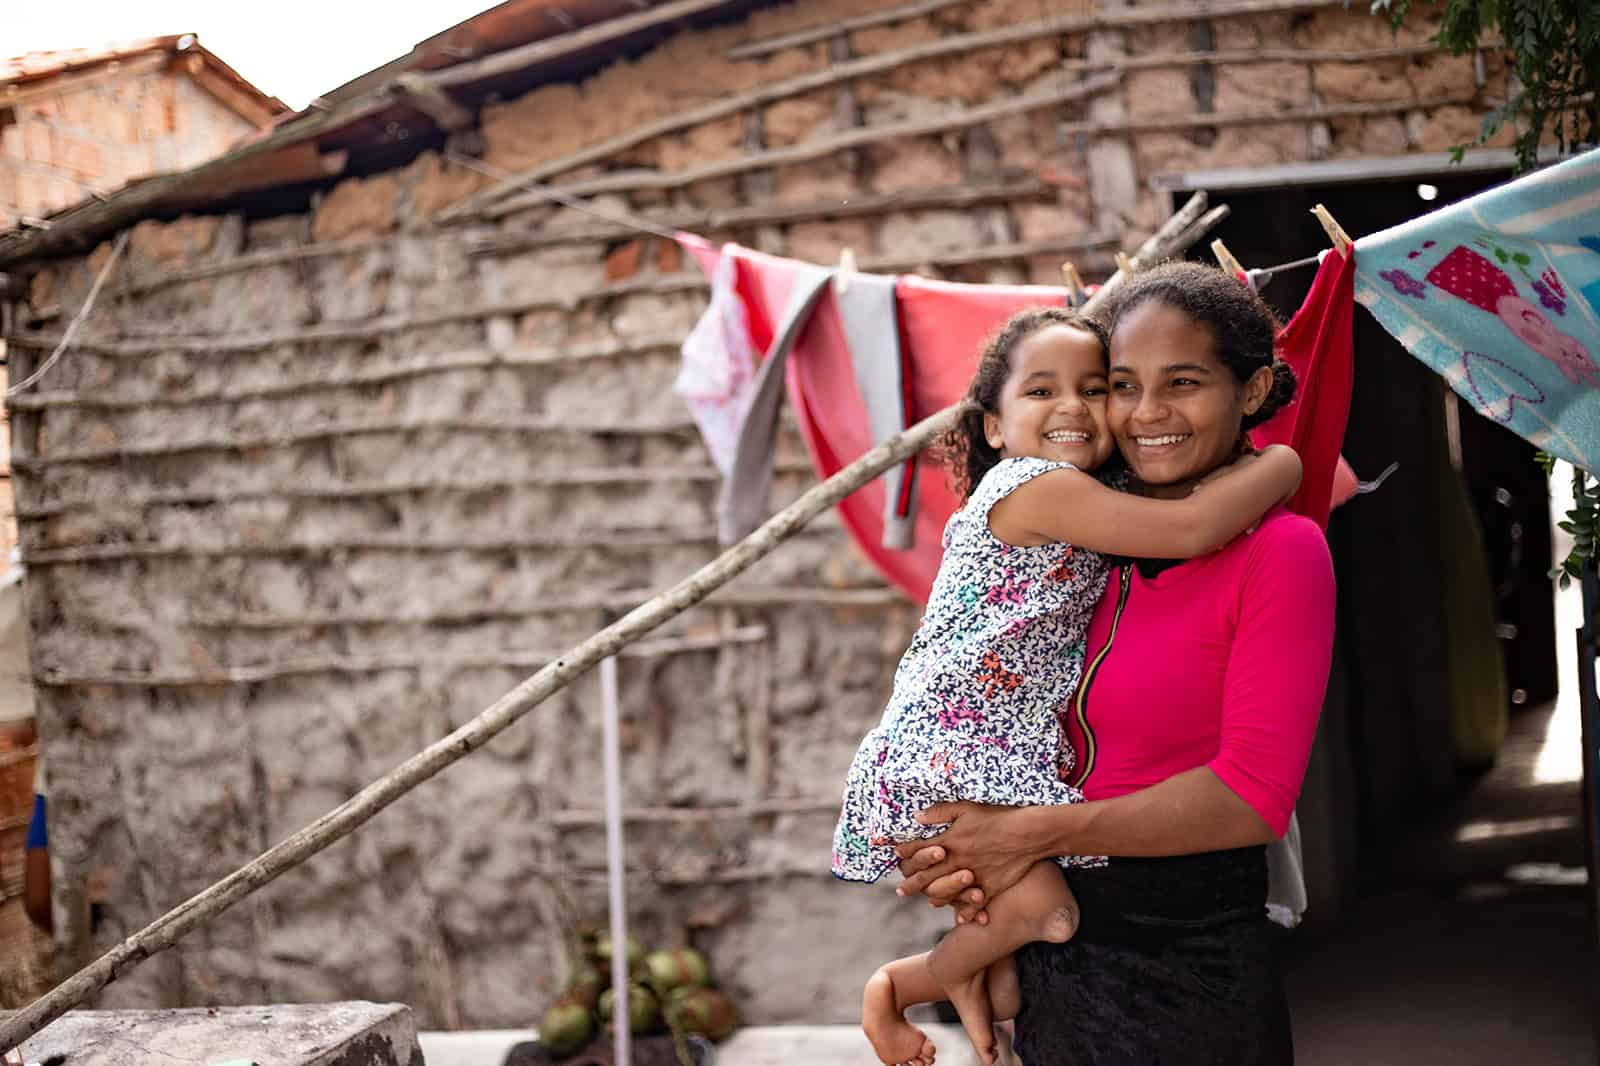 Maisa, in a blue and white dress, and her mother, Ana, in a hot pink shirt, are outside their home. There is laundry handing on a clothesline behind them. Ana is holding her daughter.